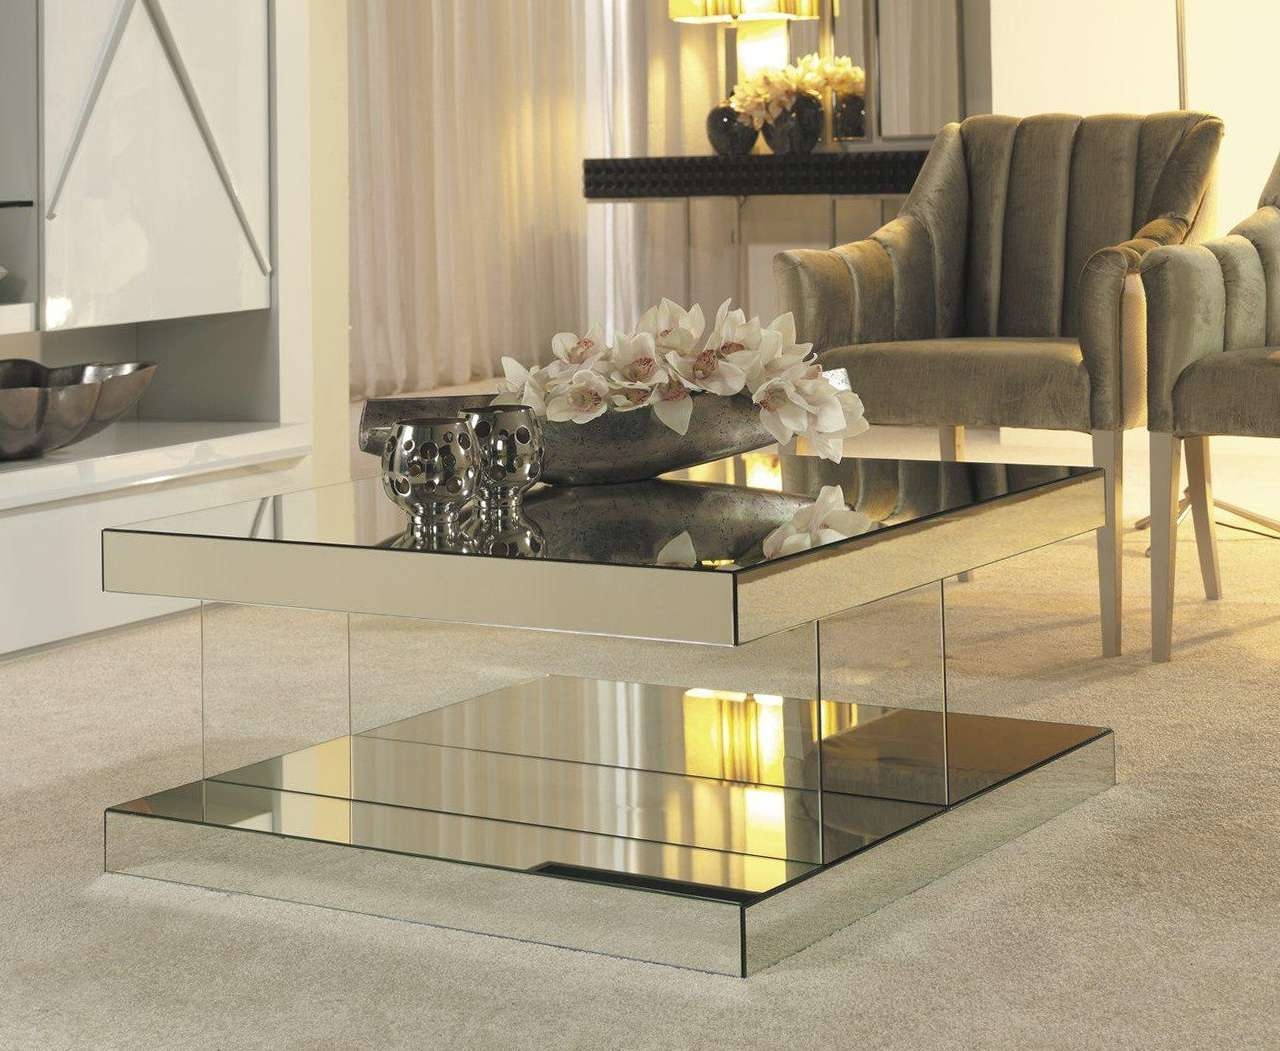 Favorite Mirrored Coffee Tables Within Luxury Mirrored Coffee Table — Cabinets, Beds, Sofas And (View 6 of 20)